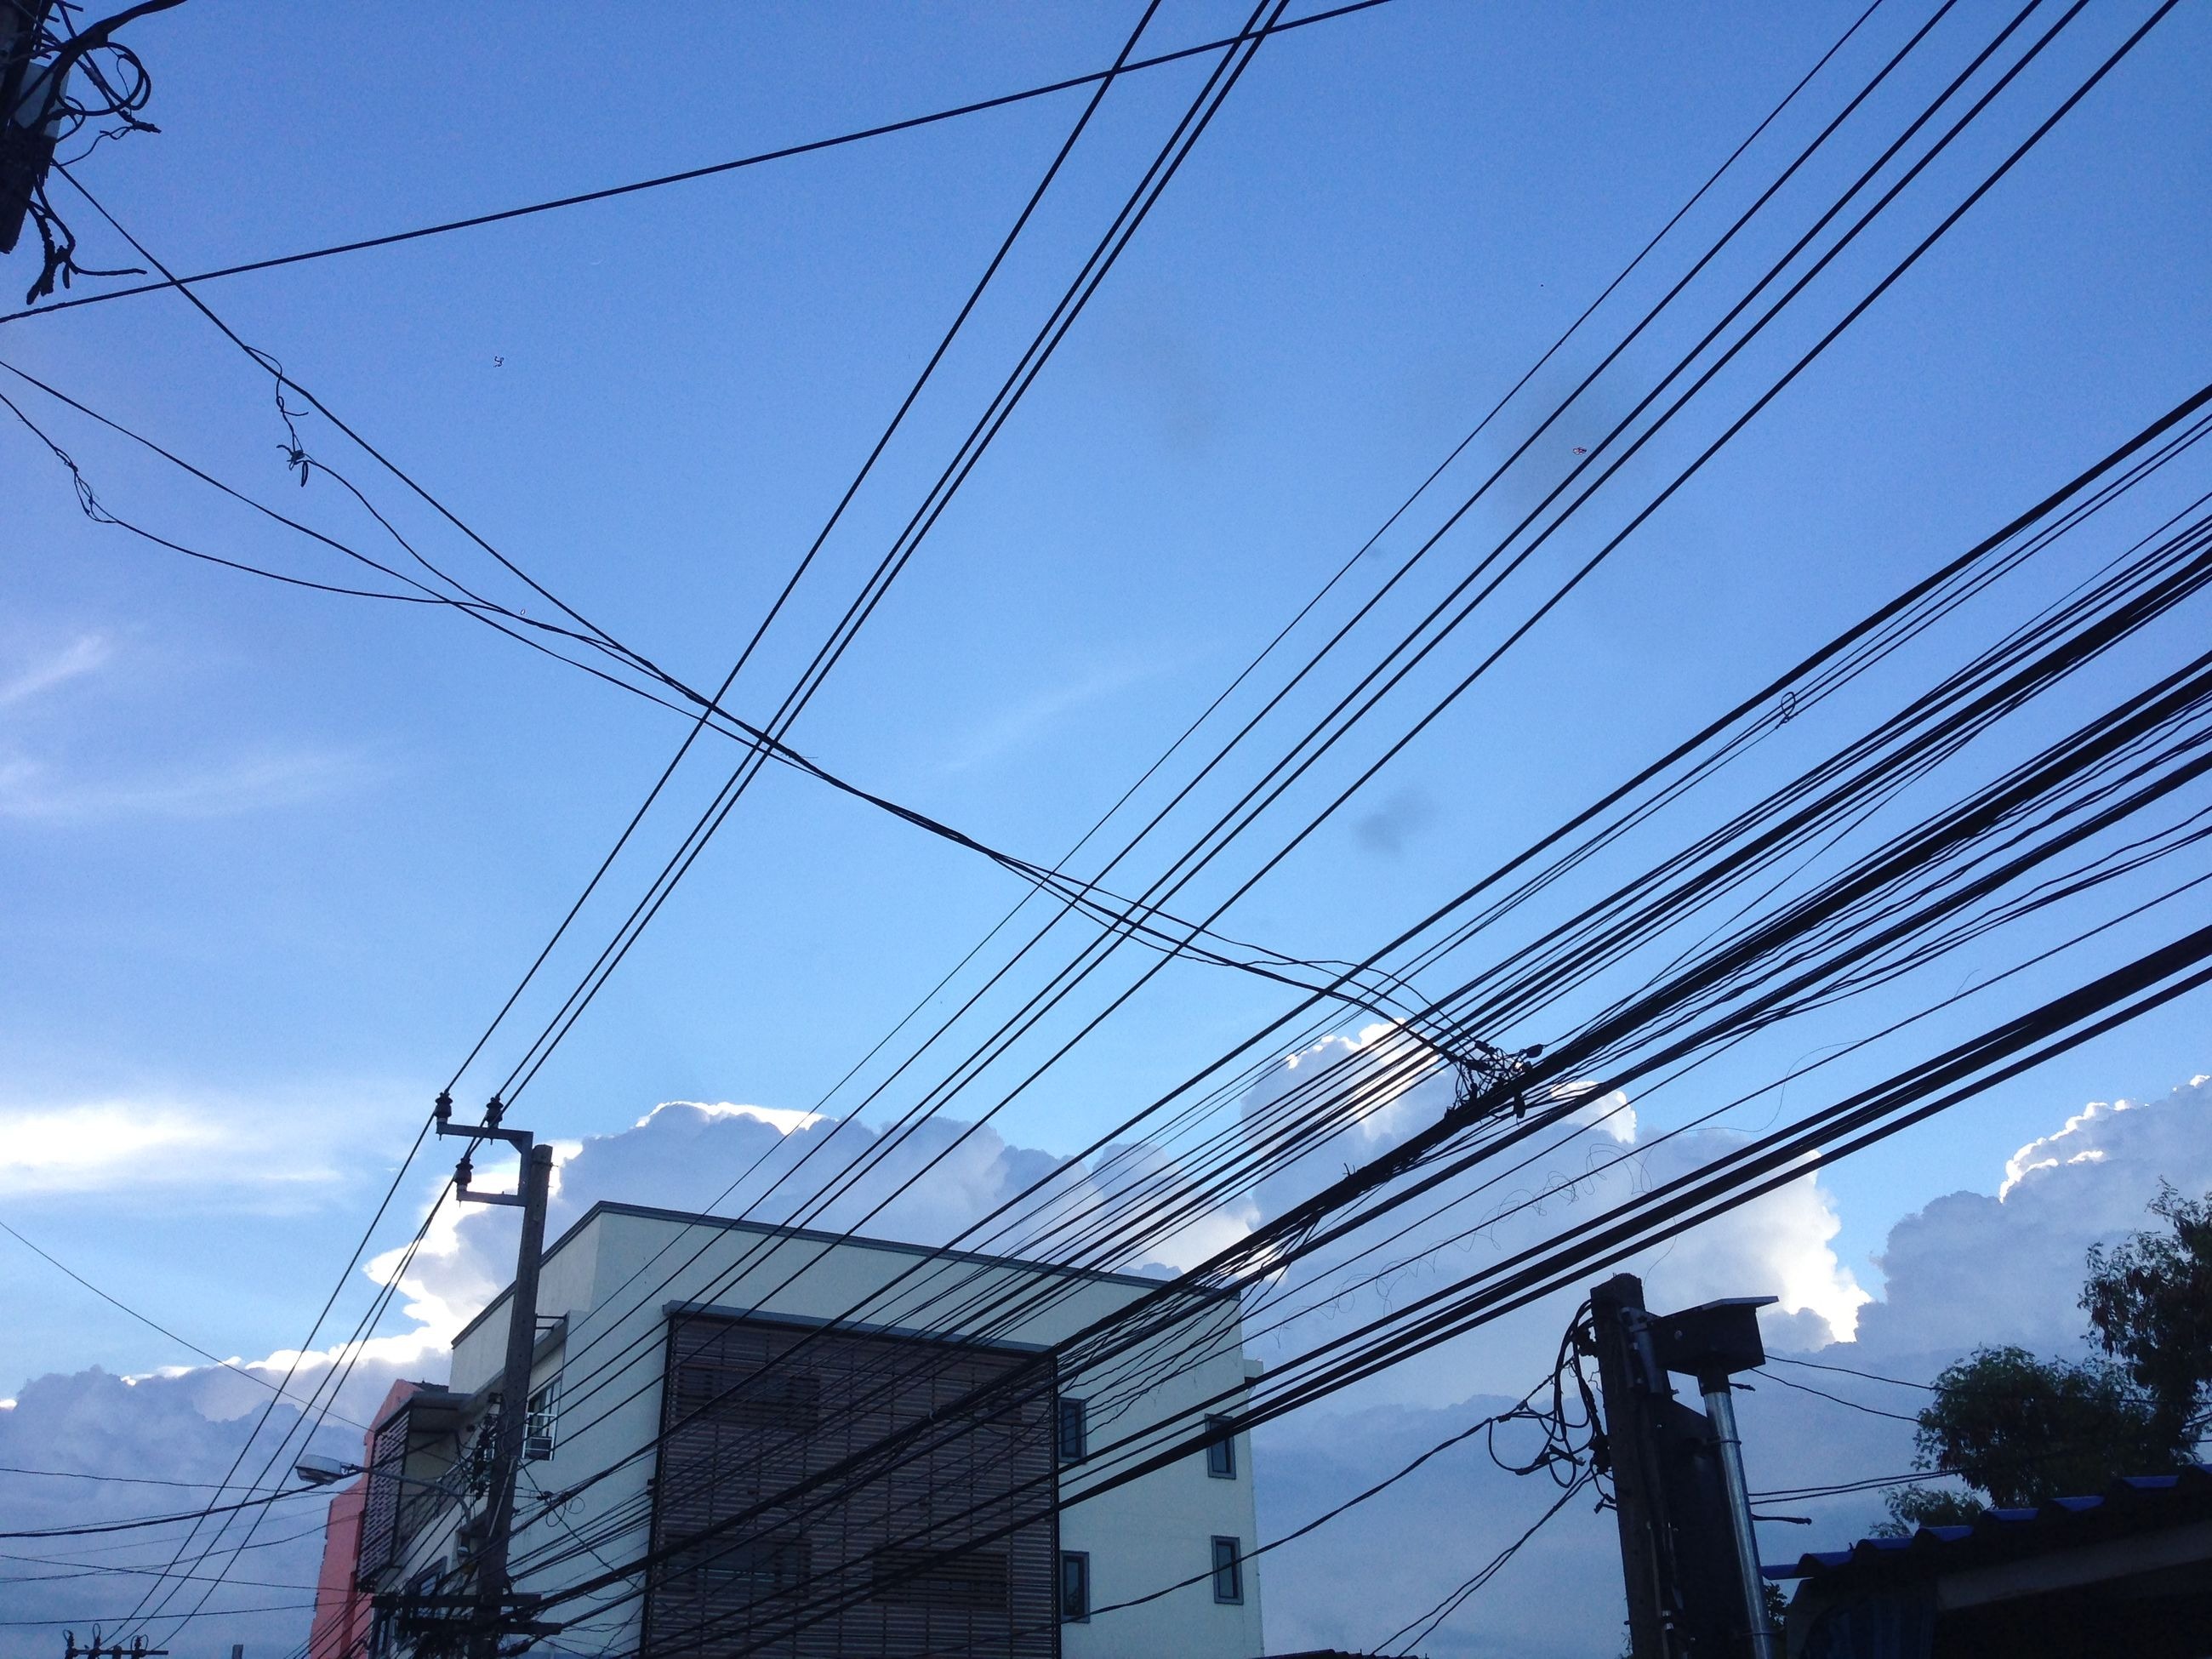 power line, electricity pylon, power supply, electricity, cable, low angle view, connection, power cable, fuel and power generation, built structure, technology, architecture, sky, building exterior, blue, wire, outdoors, no people, complexity, day